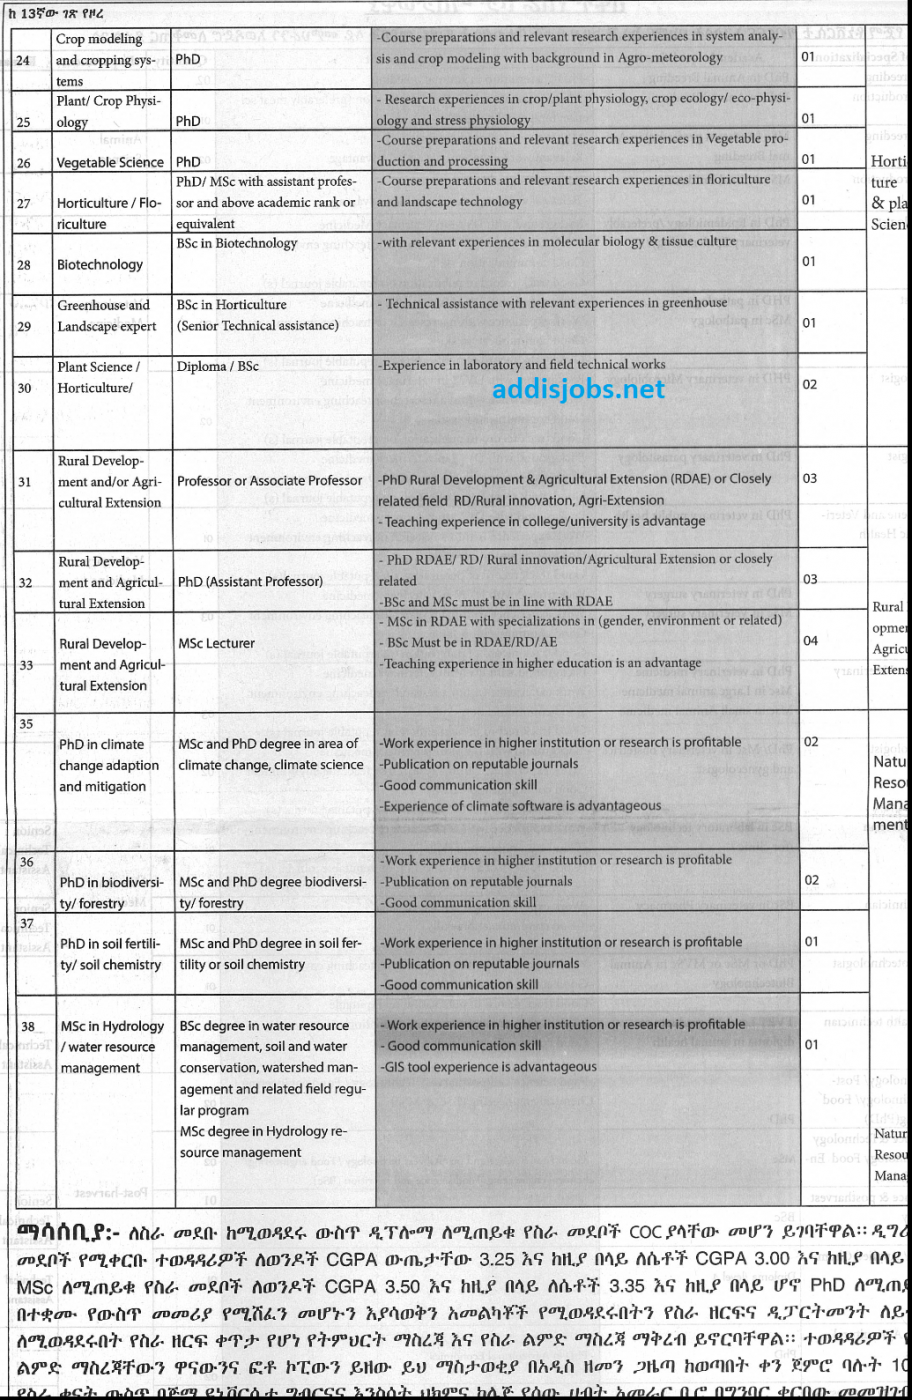 Lecturers at University – 45 Positions | AddisJobs